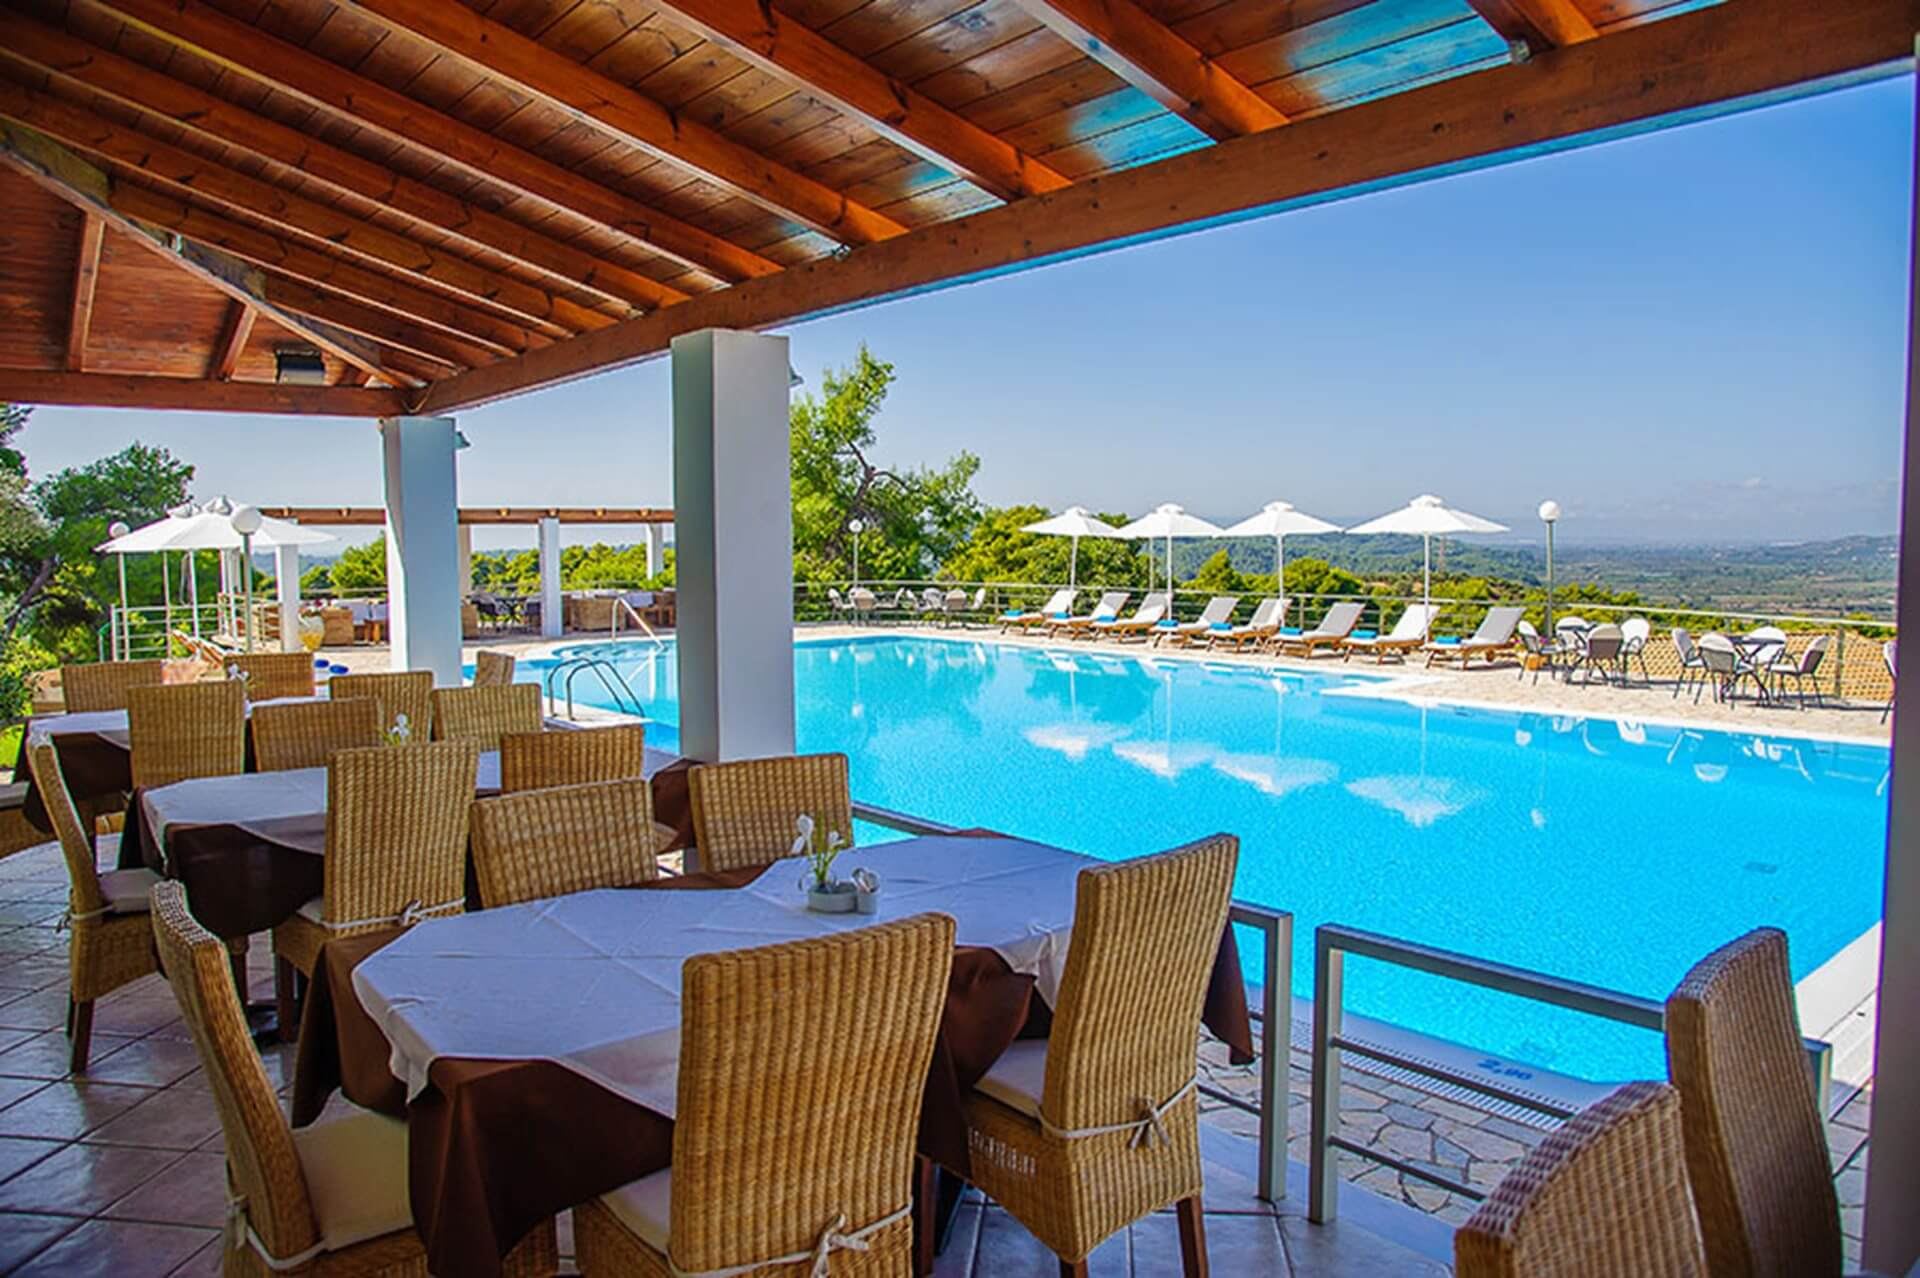 Olympion Asty | Hotels in Peloponnese - peloponnese tour